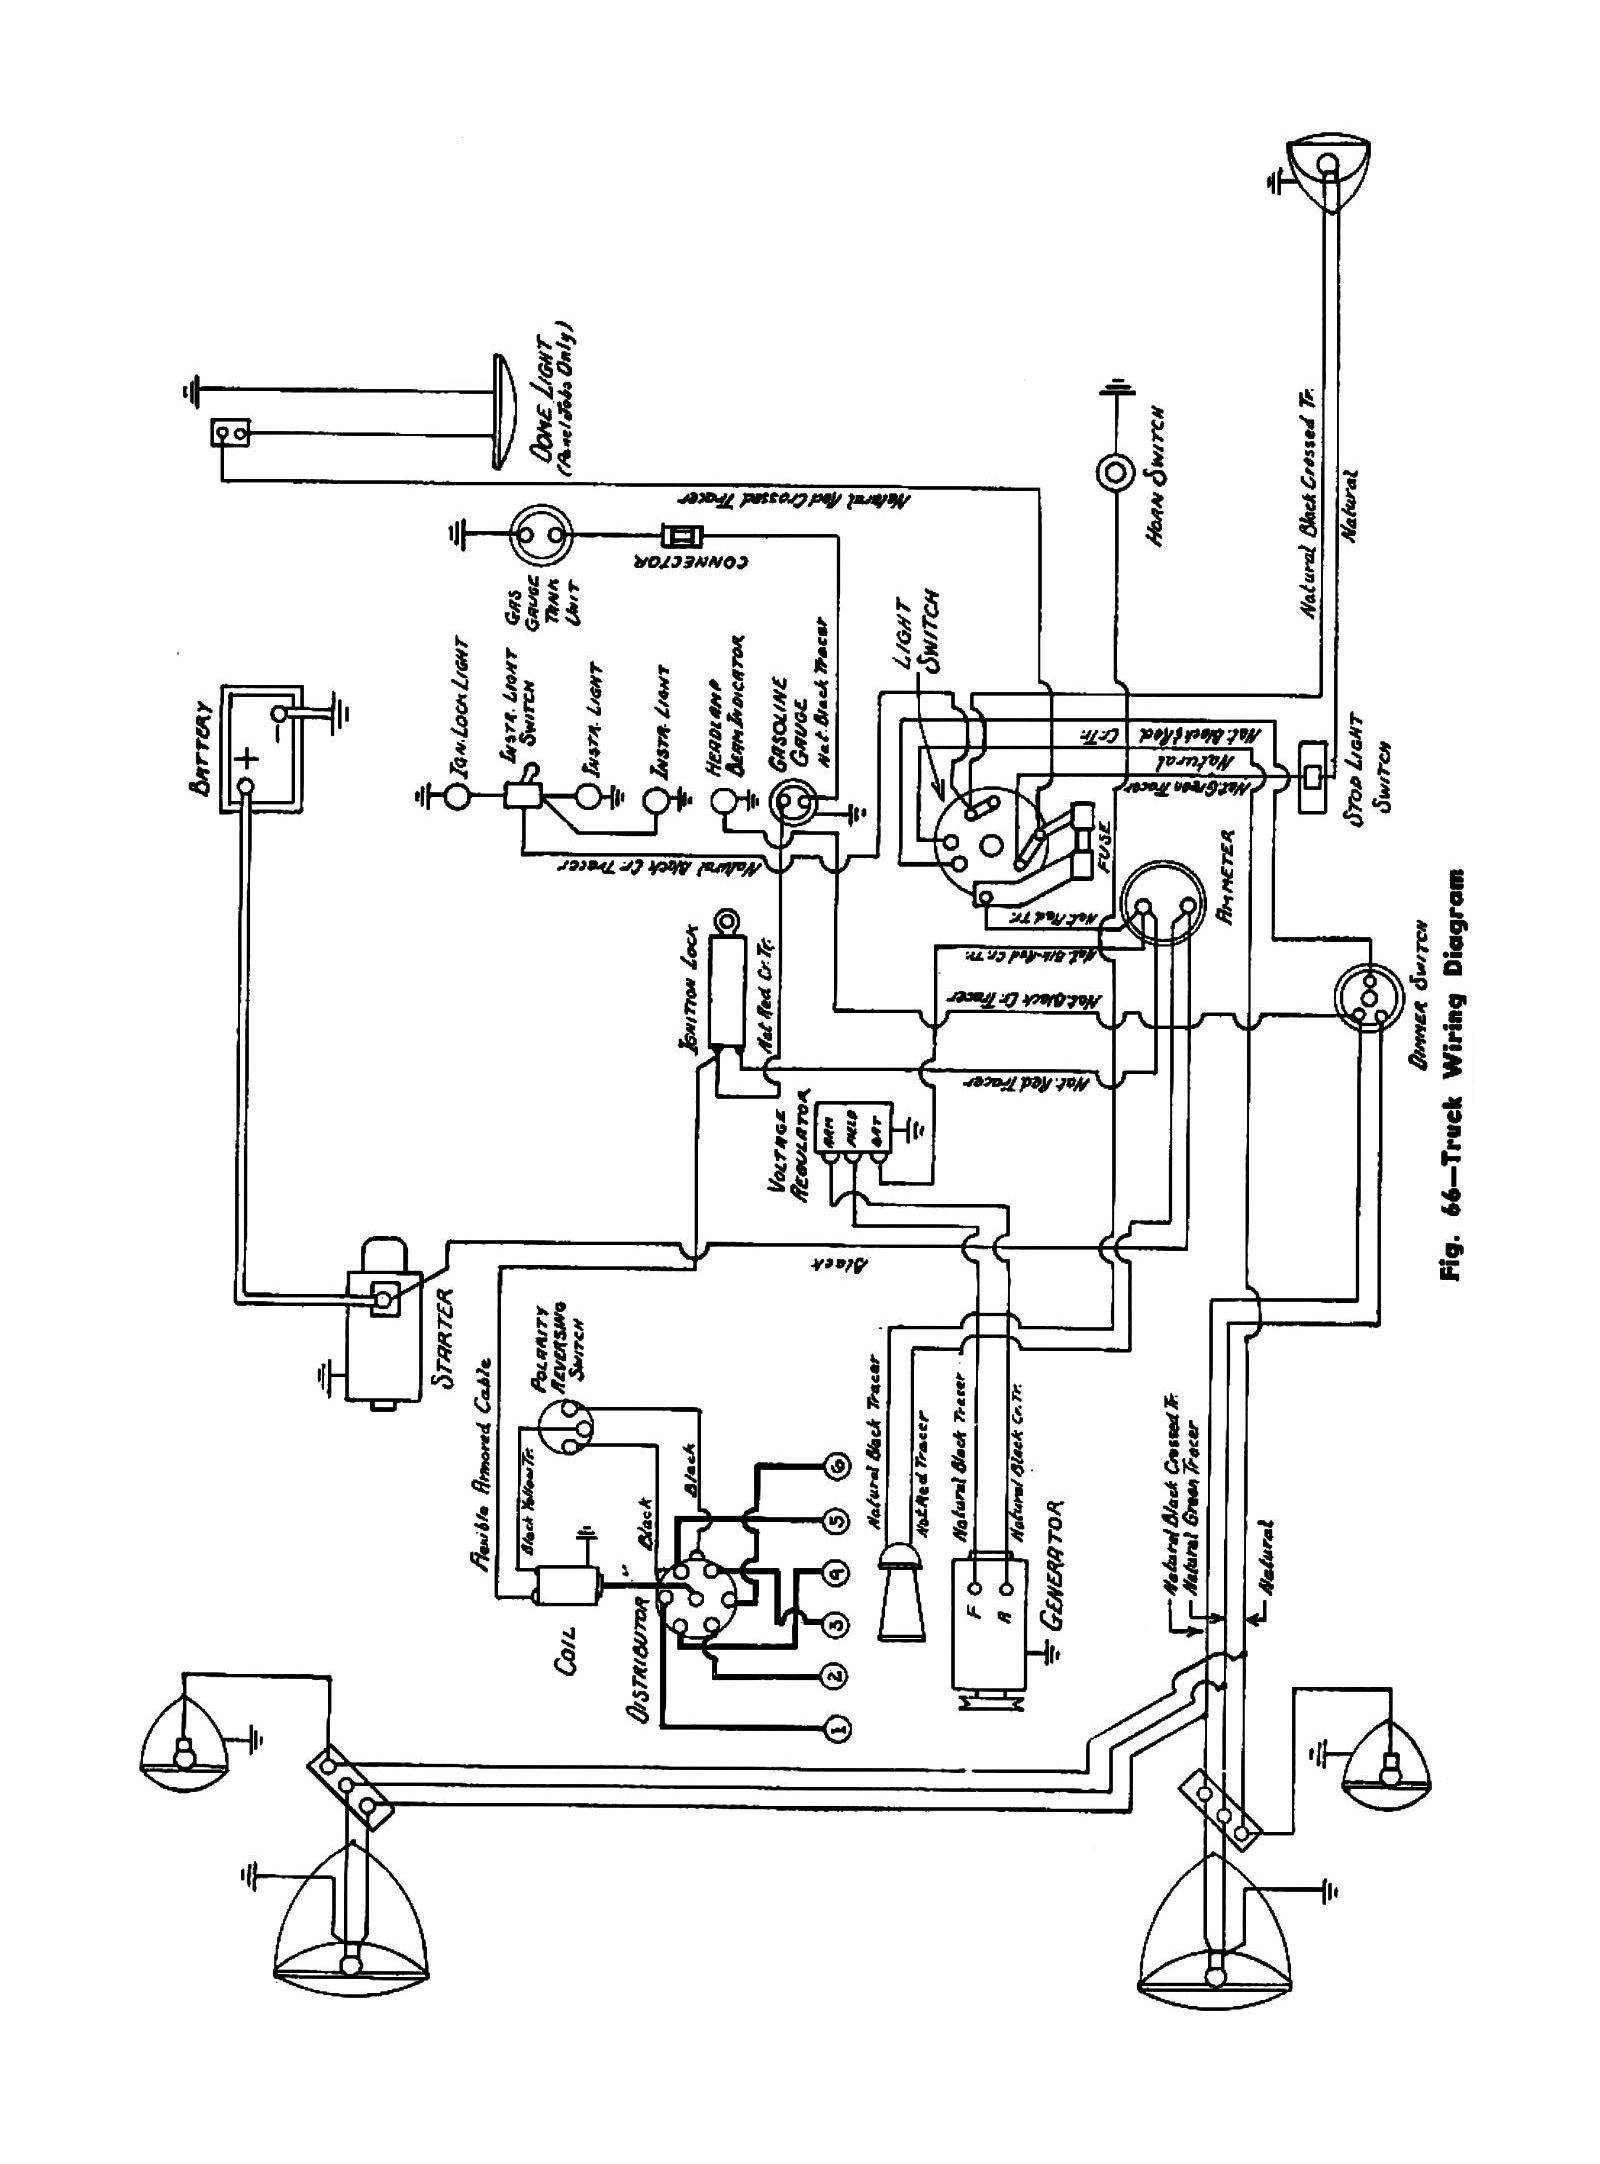 45truck ihc truck wiring diagrams mazda truck wiring diagrams \u2022 free Chevy Truck Fuse Box Diagram at arjmand.co